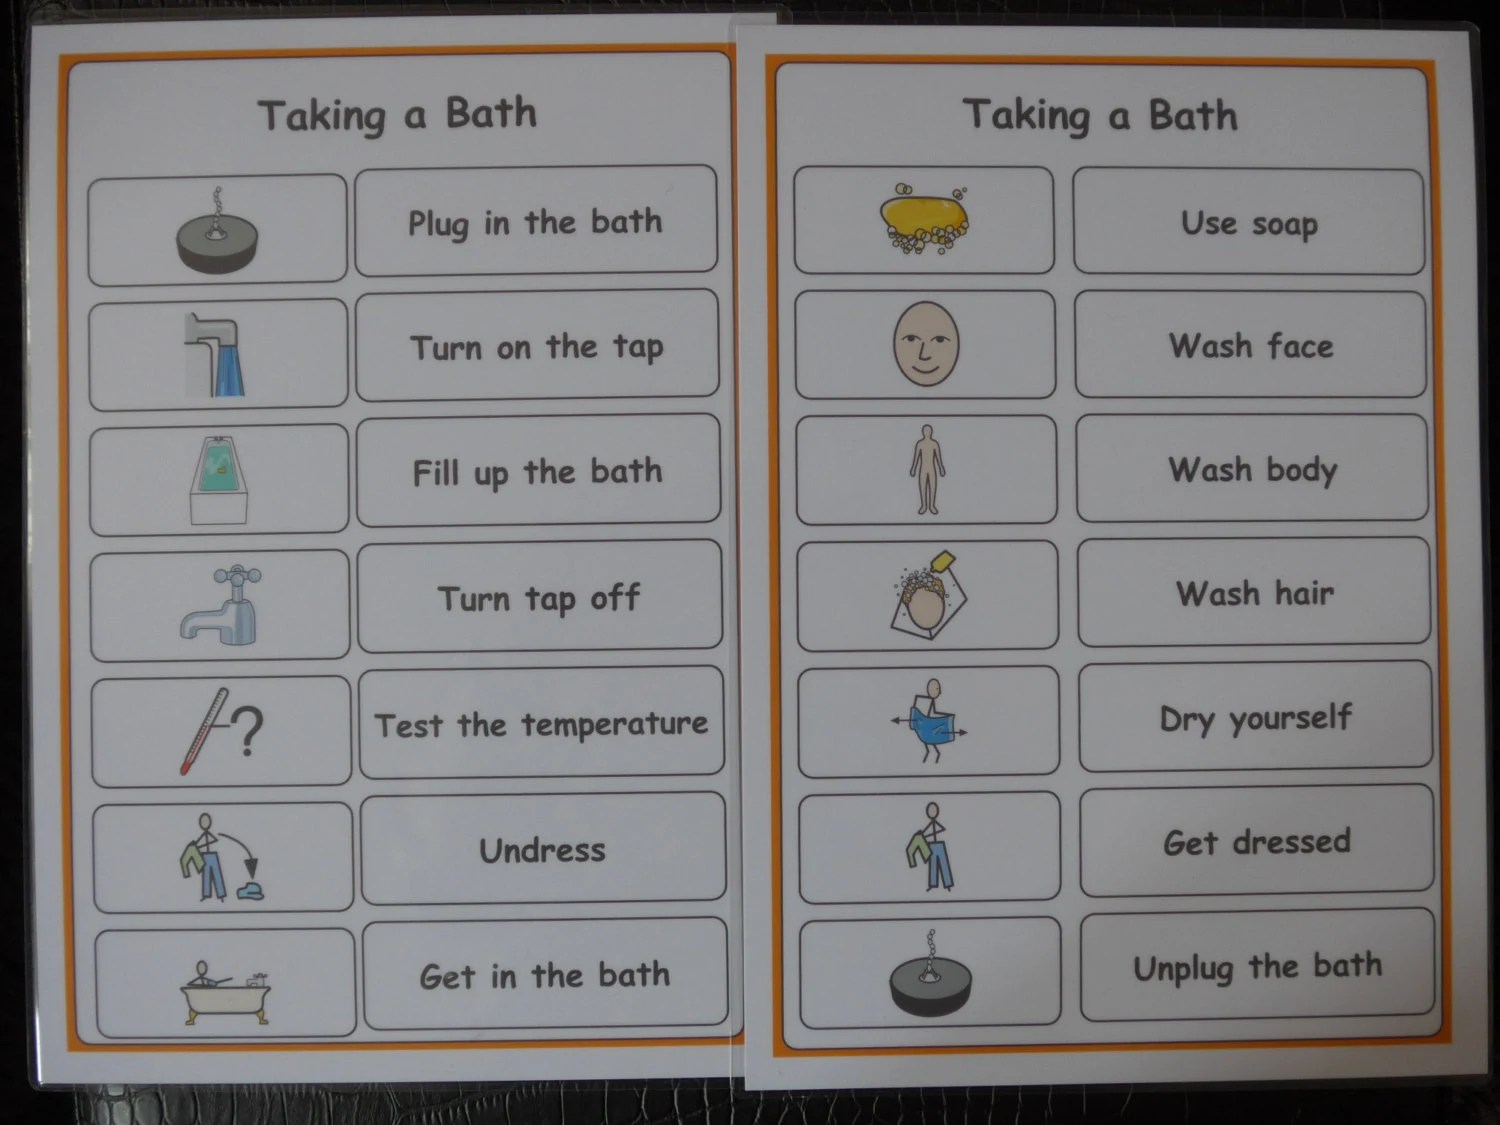 Taking A Bath Hygiene Checklist Support Aid For